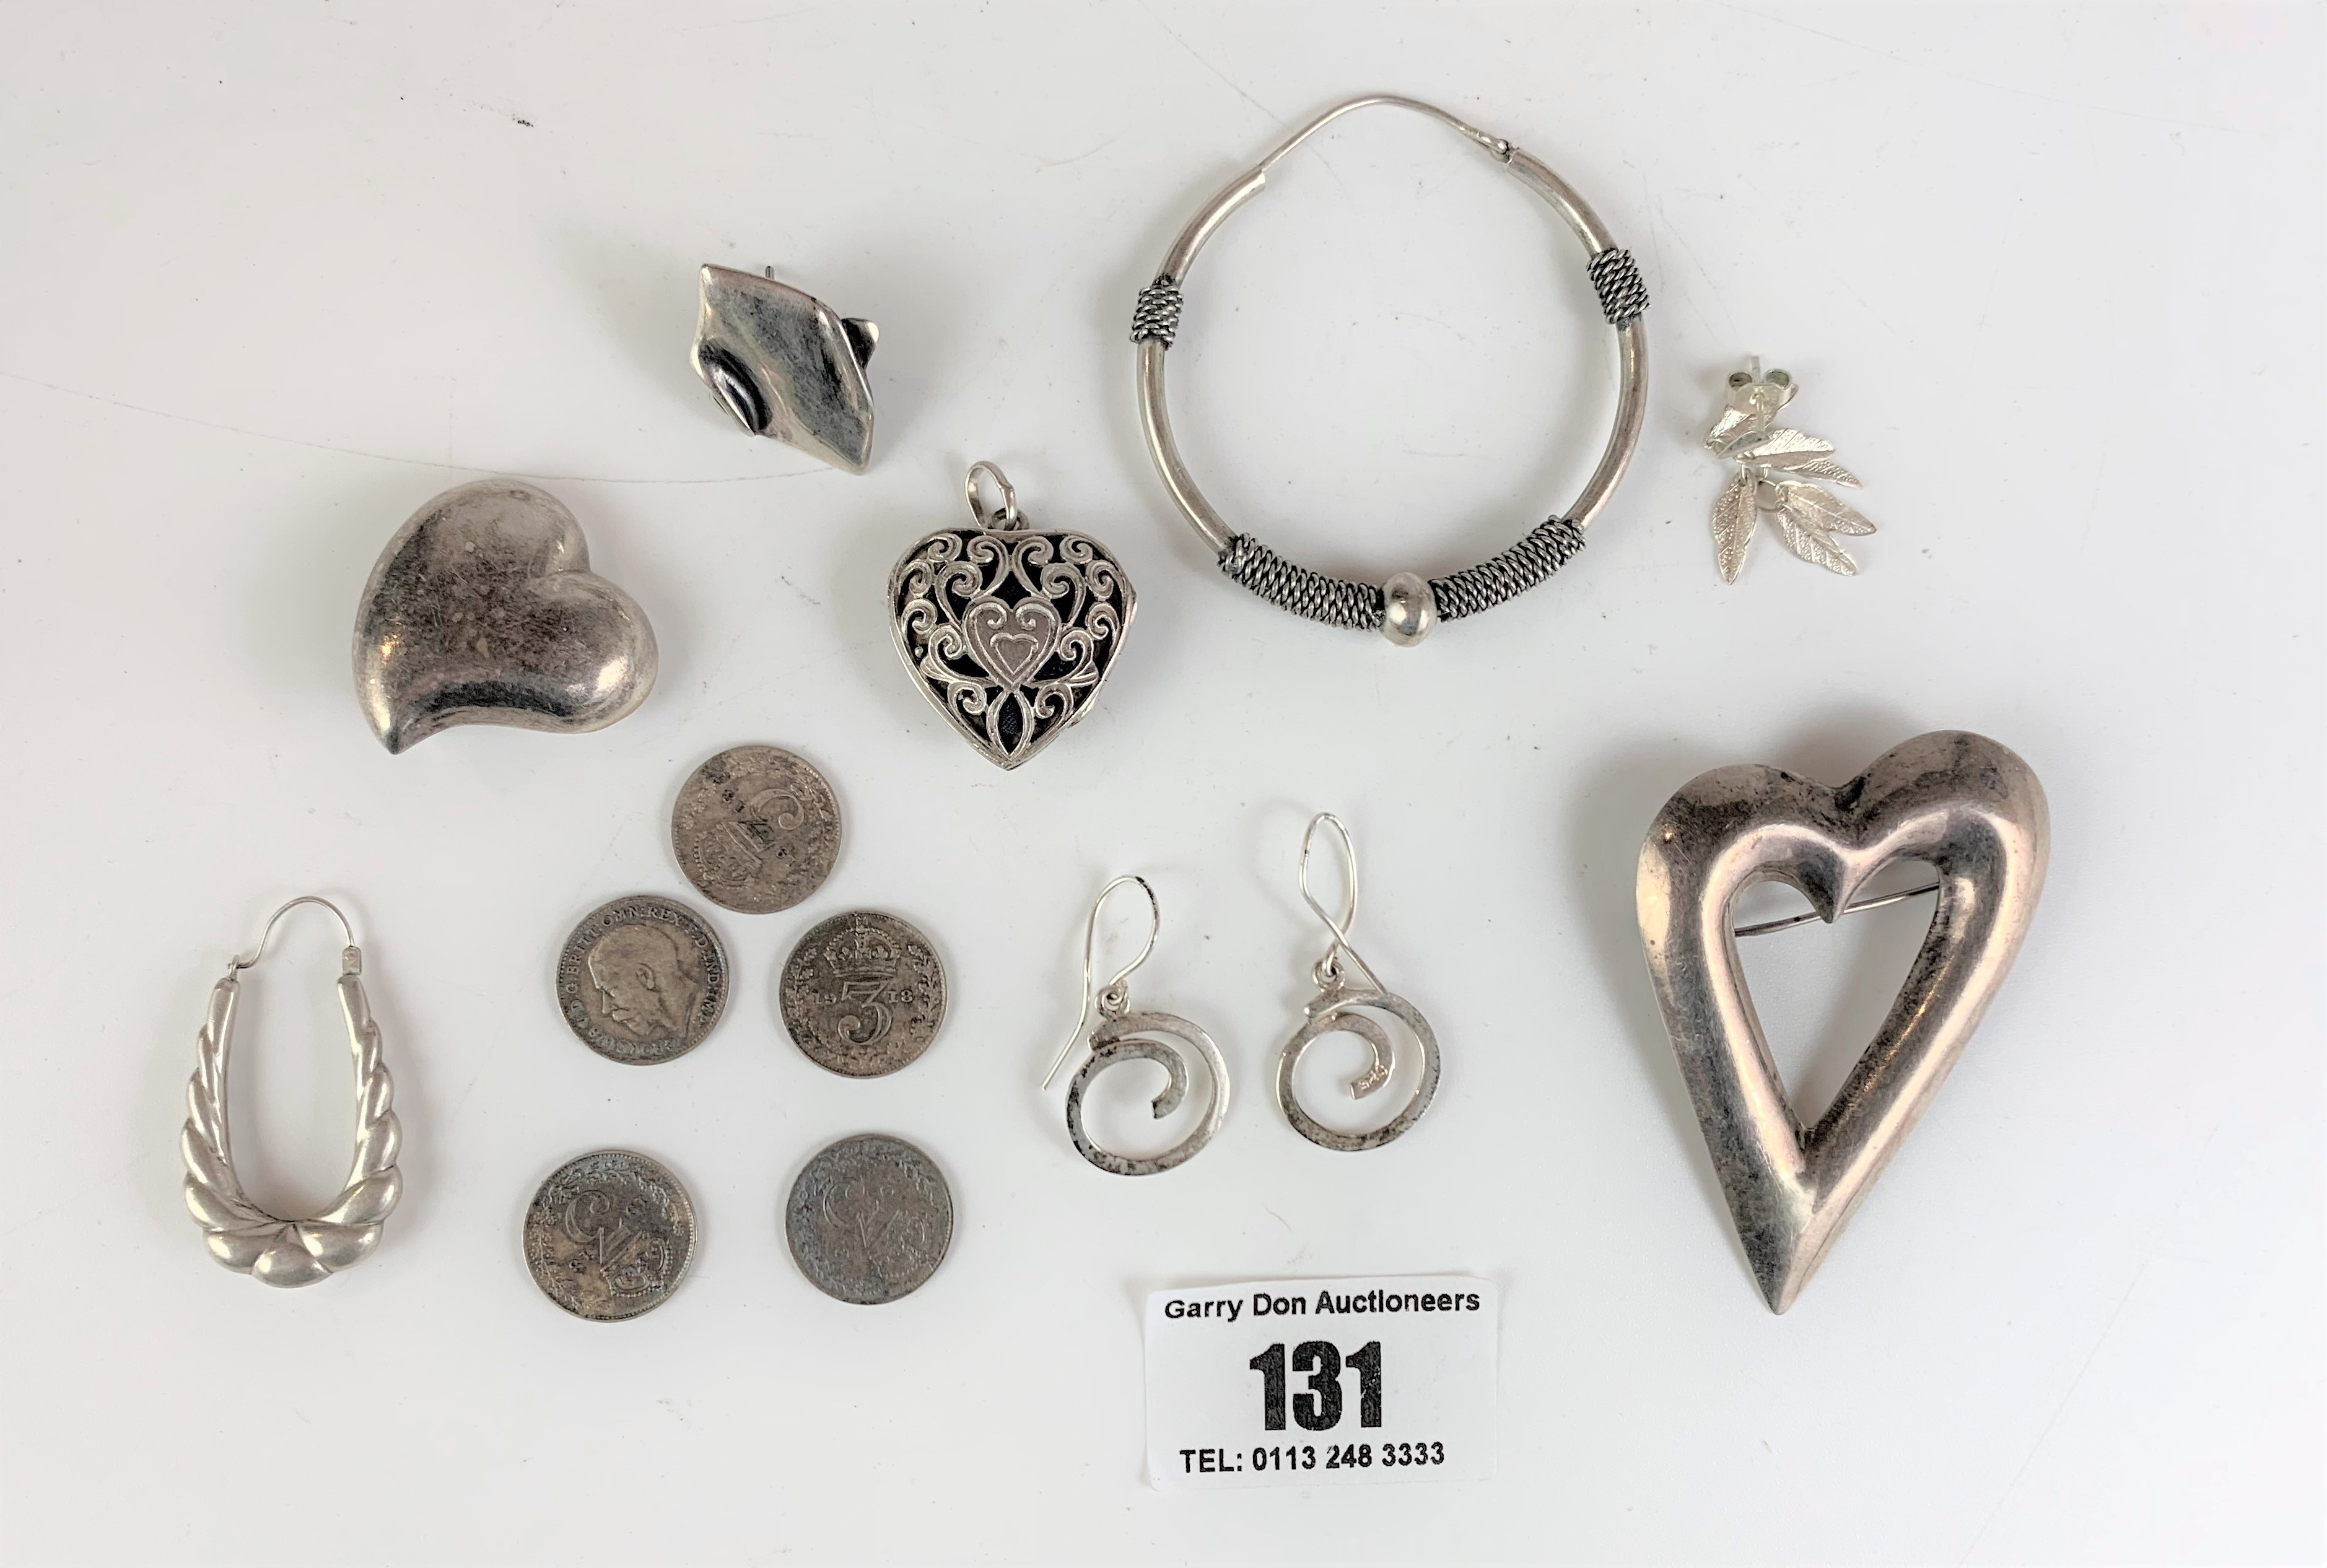 Assorted silver jewellery and coins, total w: 1.3 ozt - Image 2 of 5